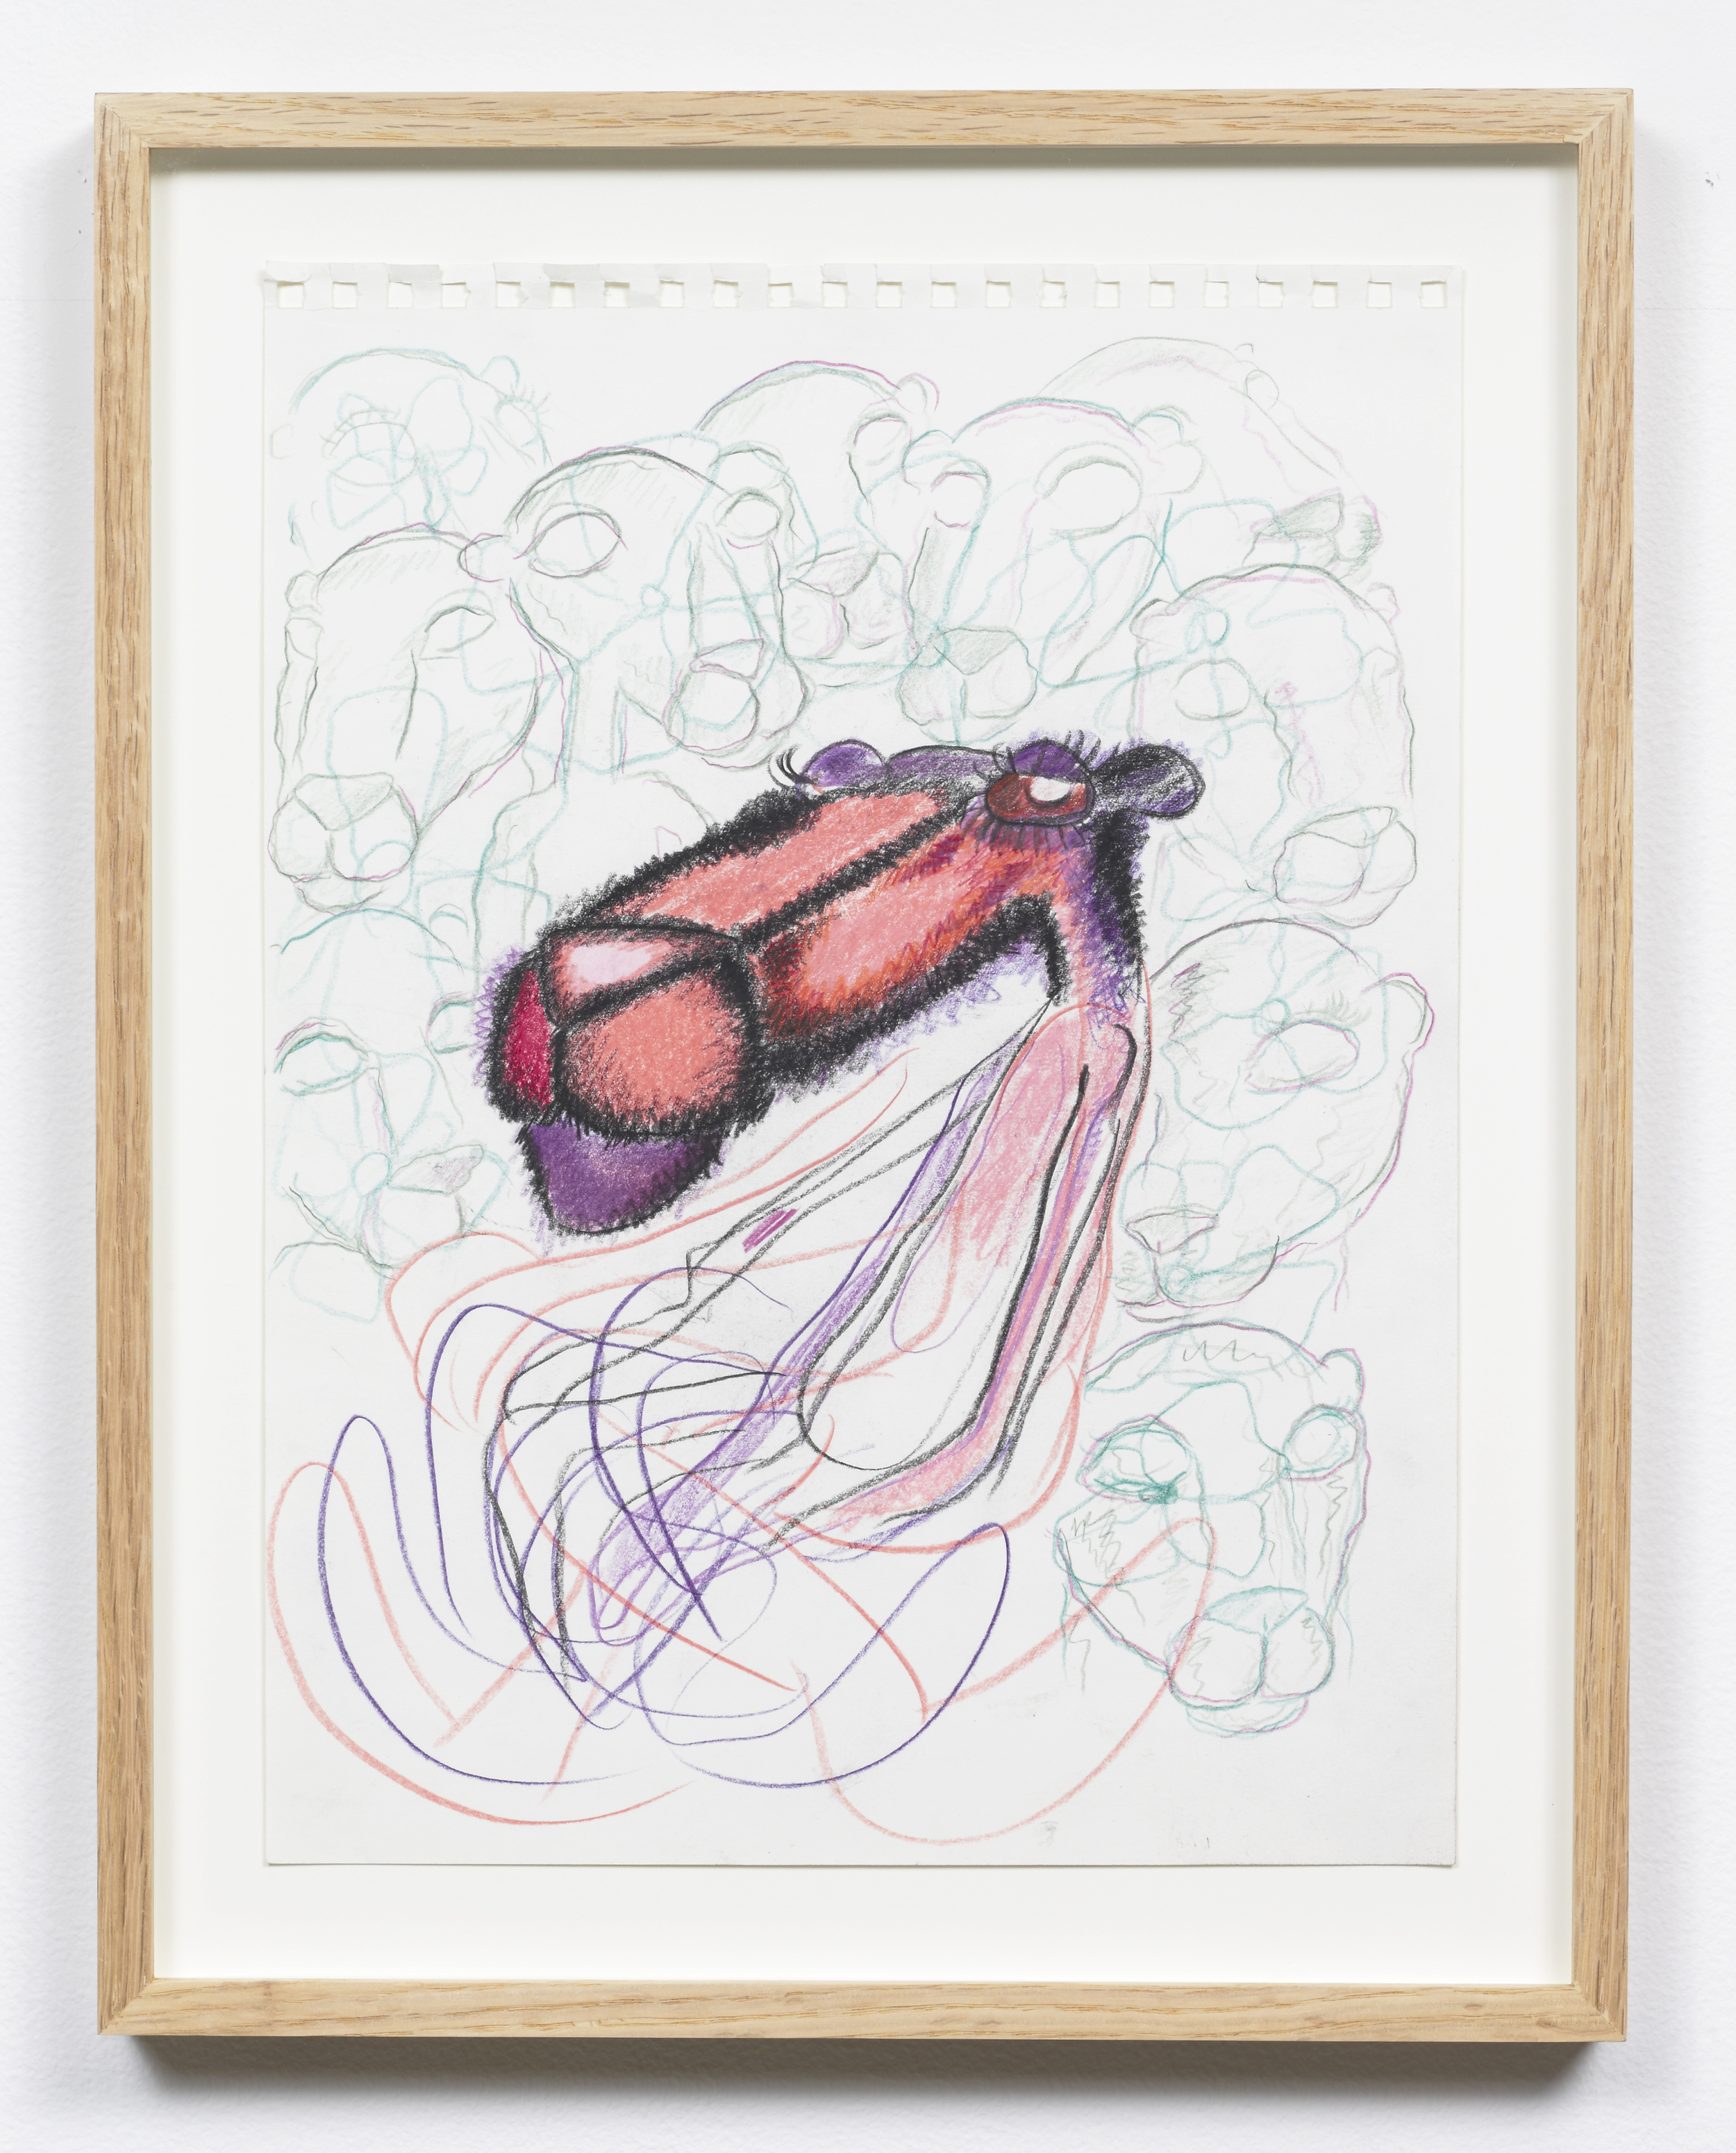 Bjarne Melgaard,  Untitled , 2012, colored pencil on paper, 15 x 11 in